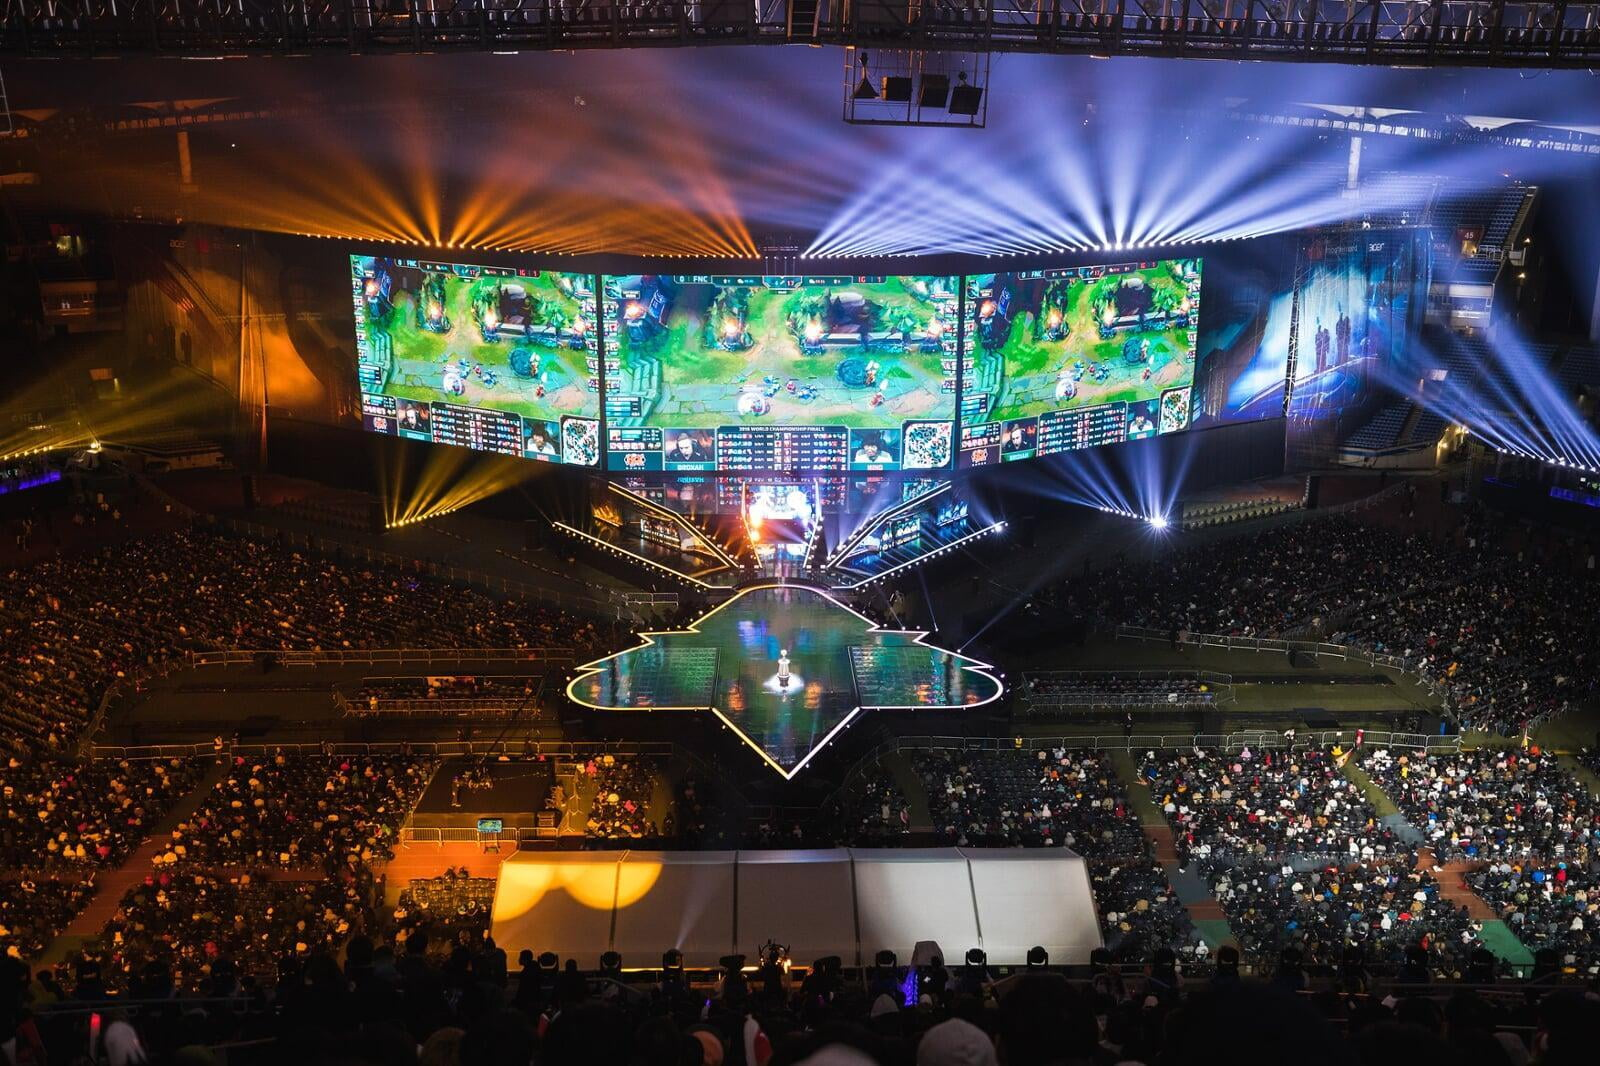 A stadium filled with screens showing live esports